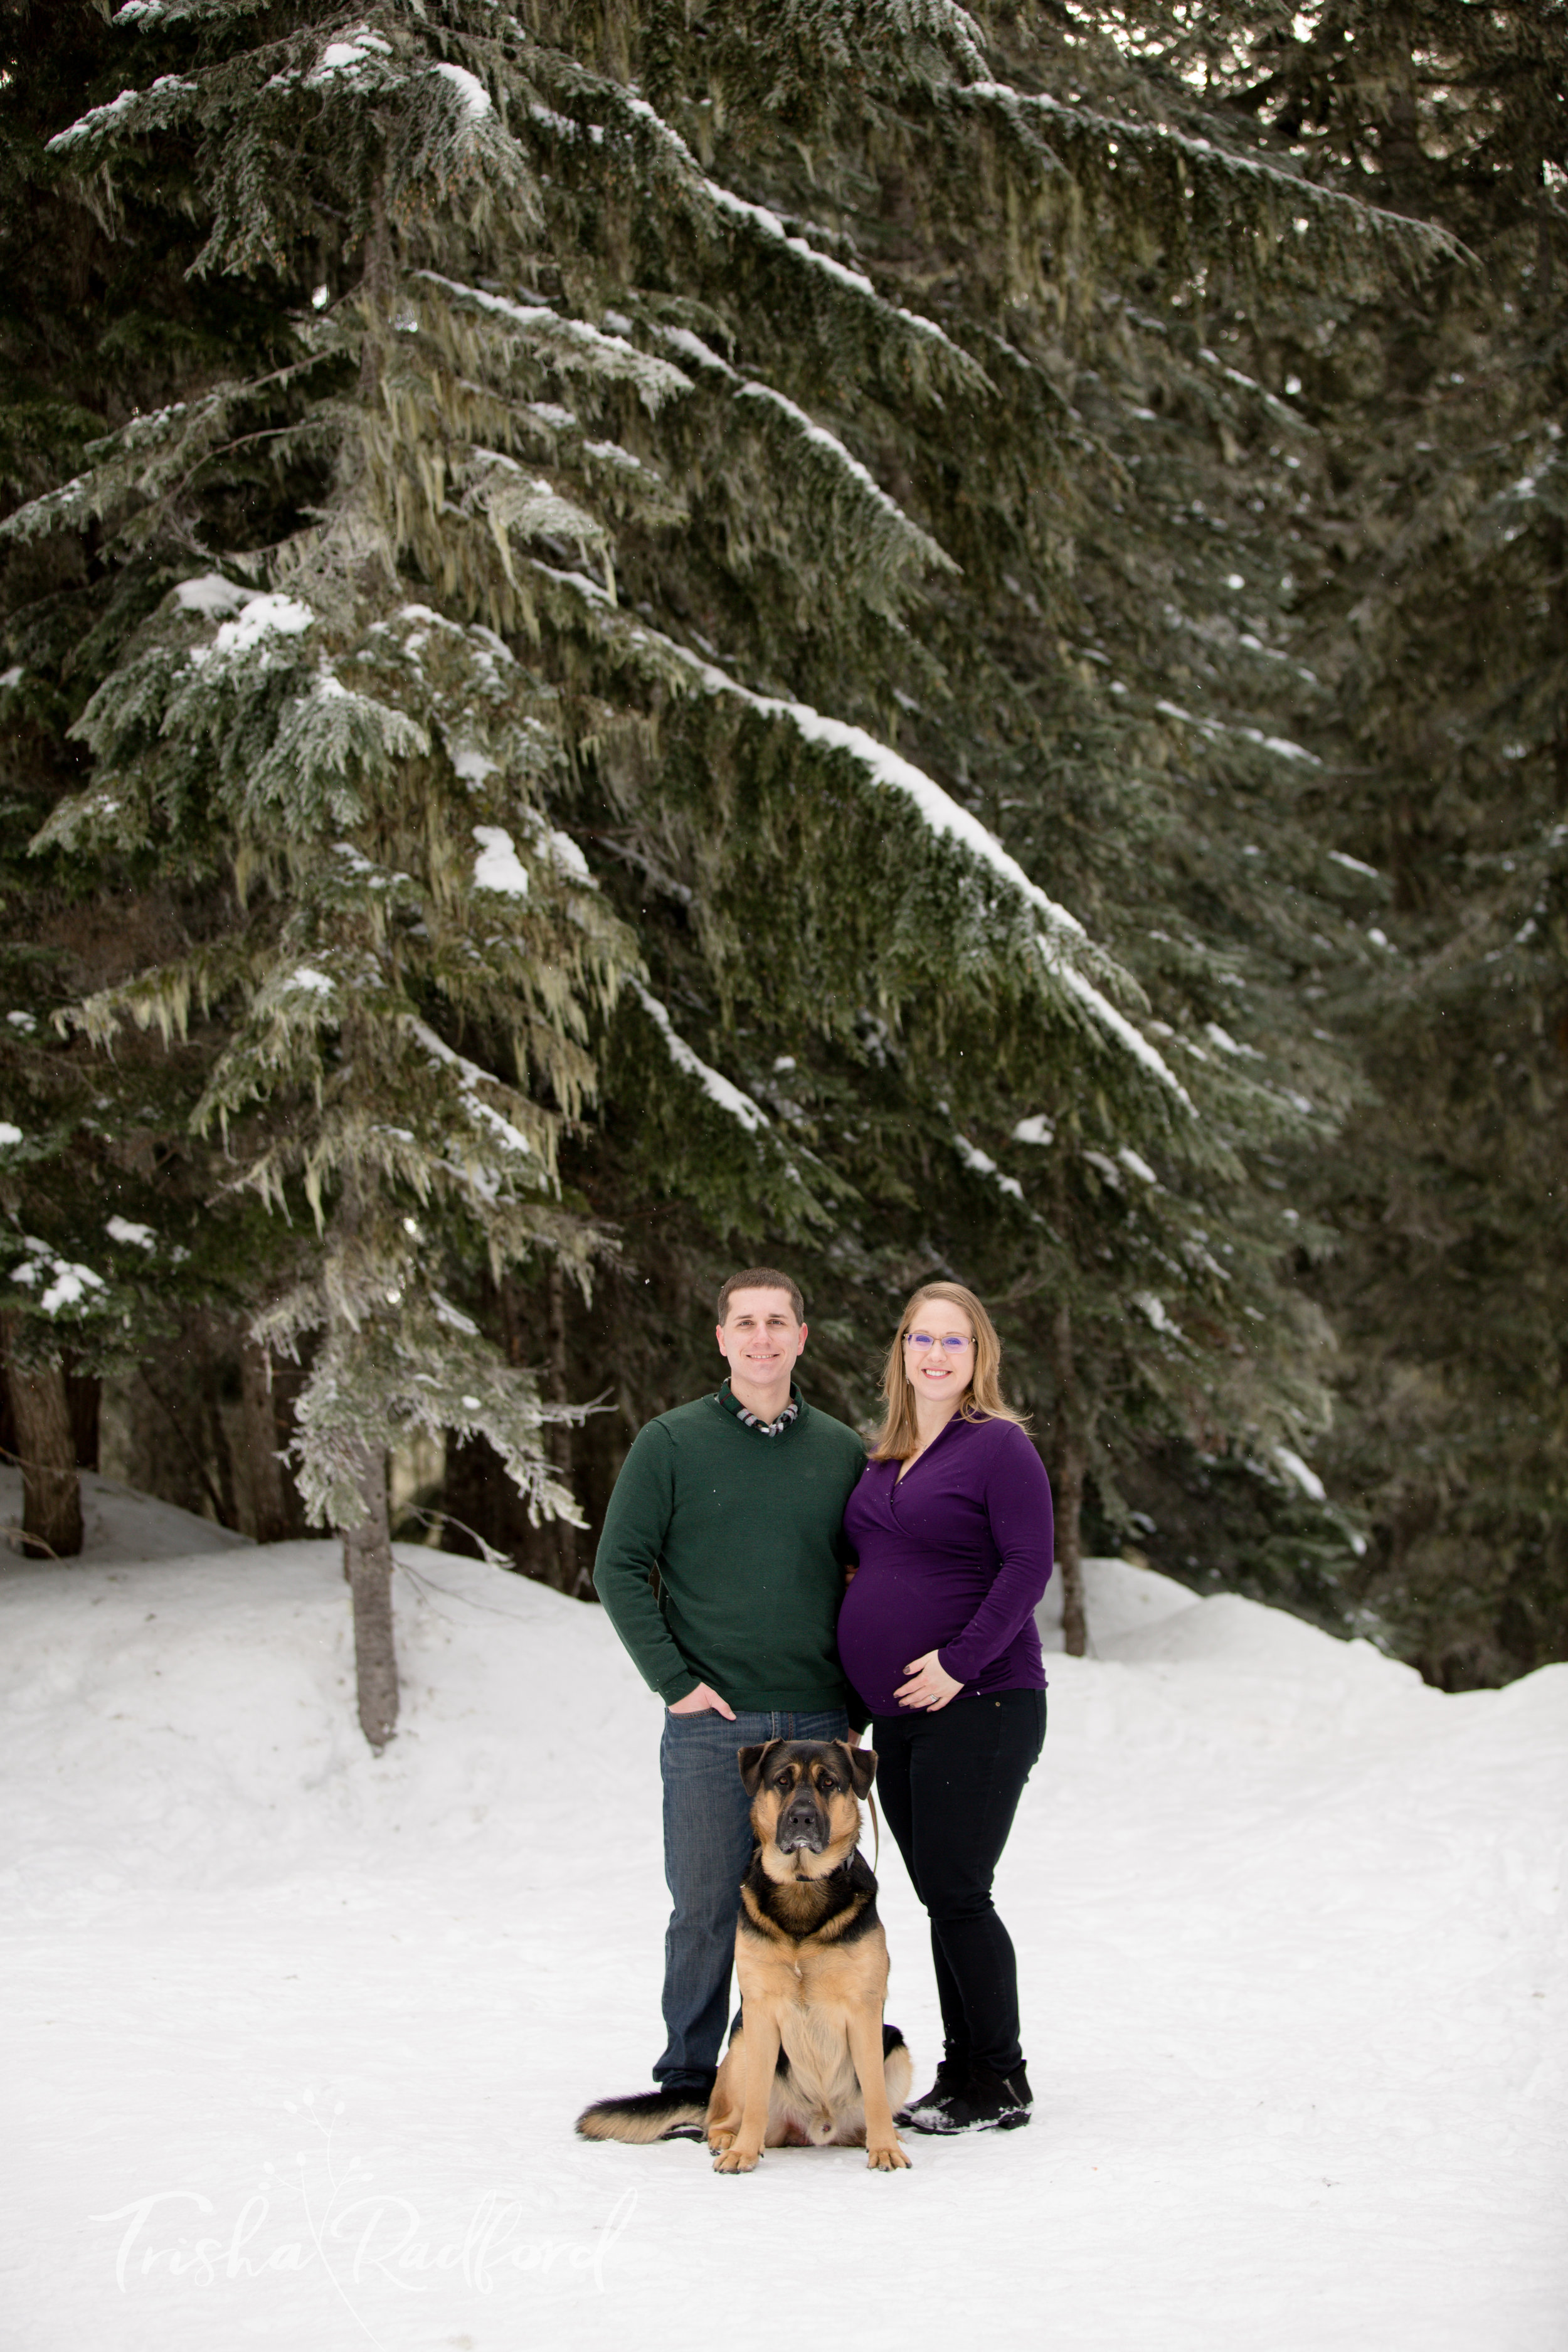 Maternity photoshoot at Stevens Pass by Trisha Radford Photography